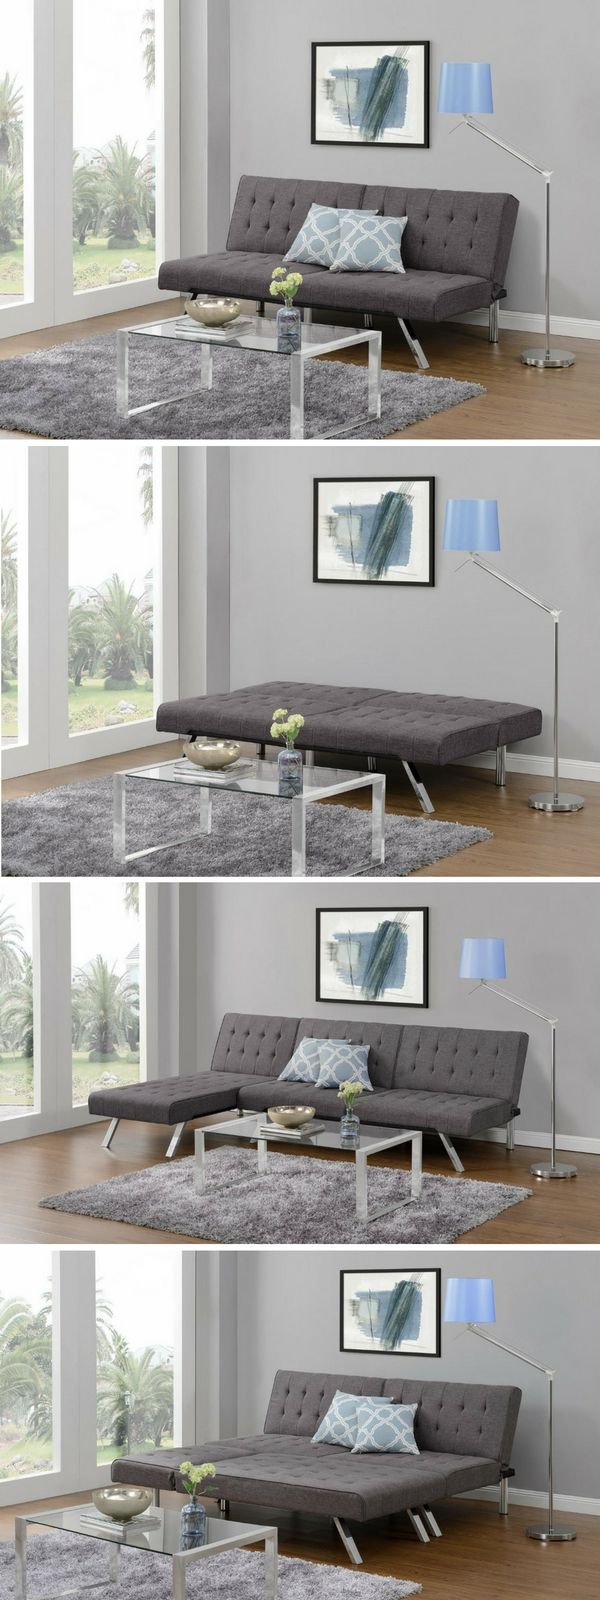 best 25 futon bedroom ideas on pinterest futon ideas futon bed